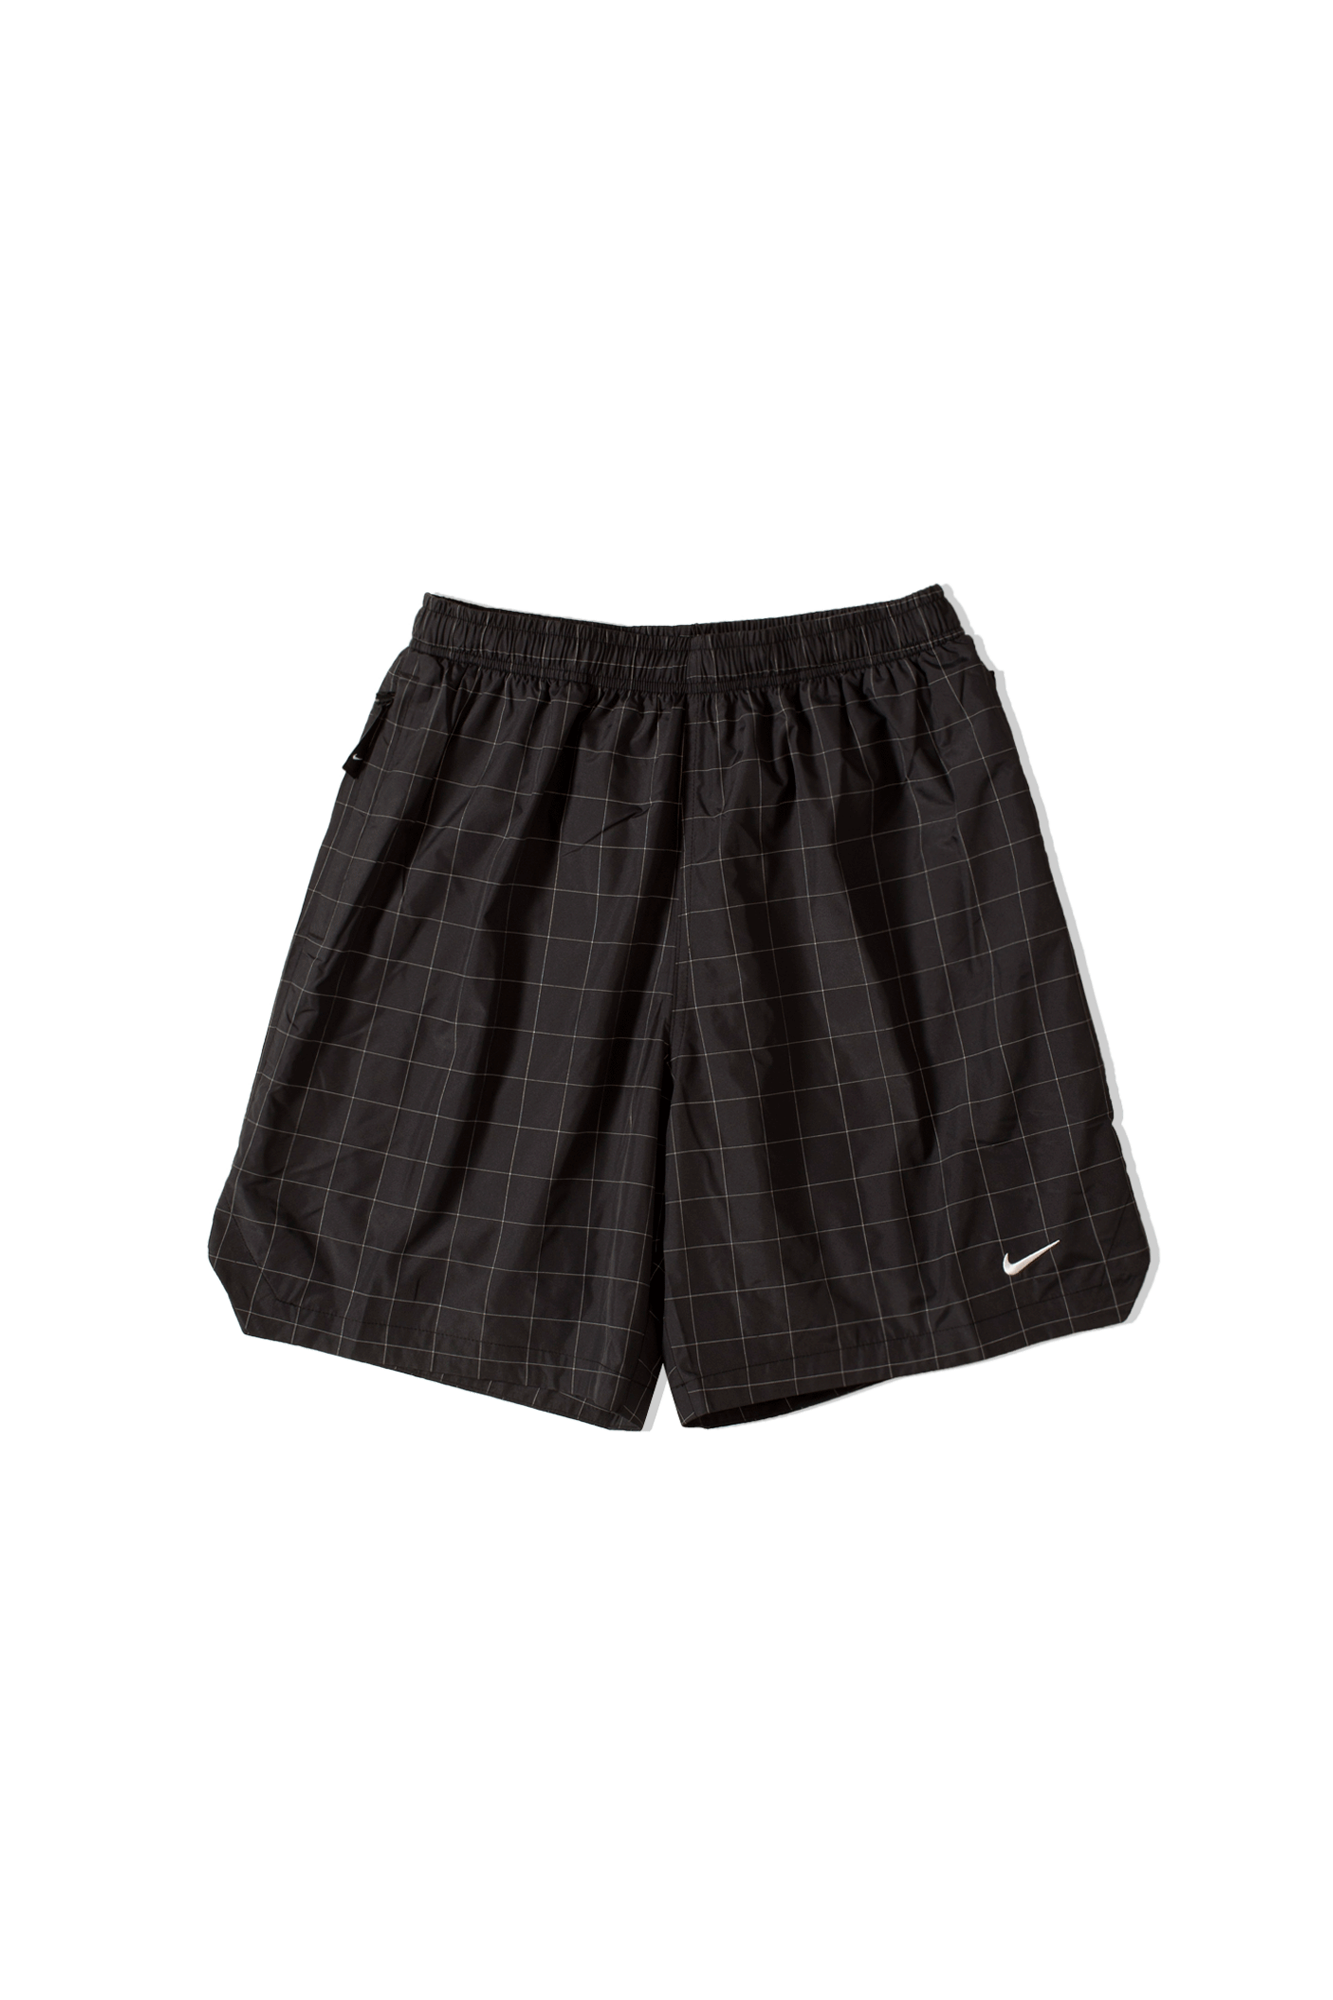 M Nrg Flash Short Black